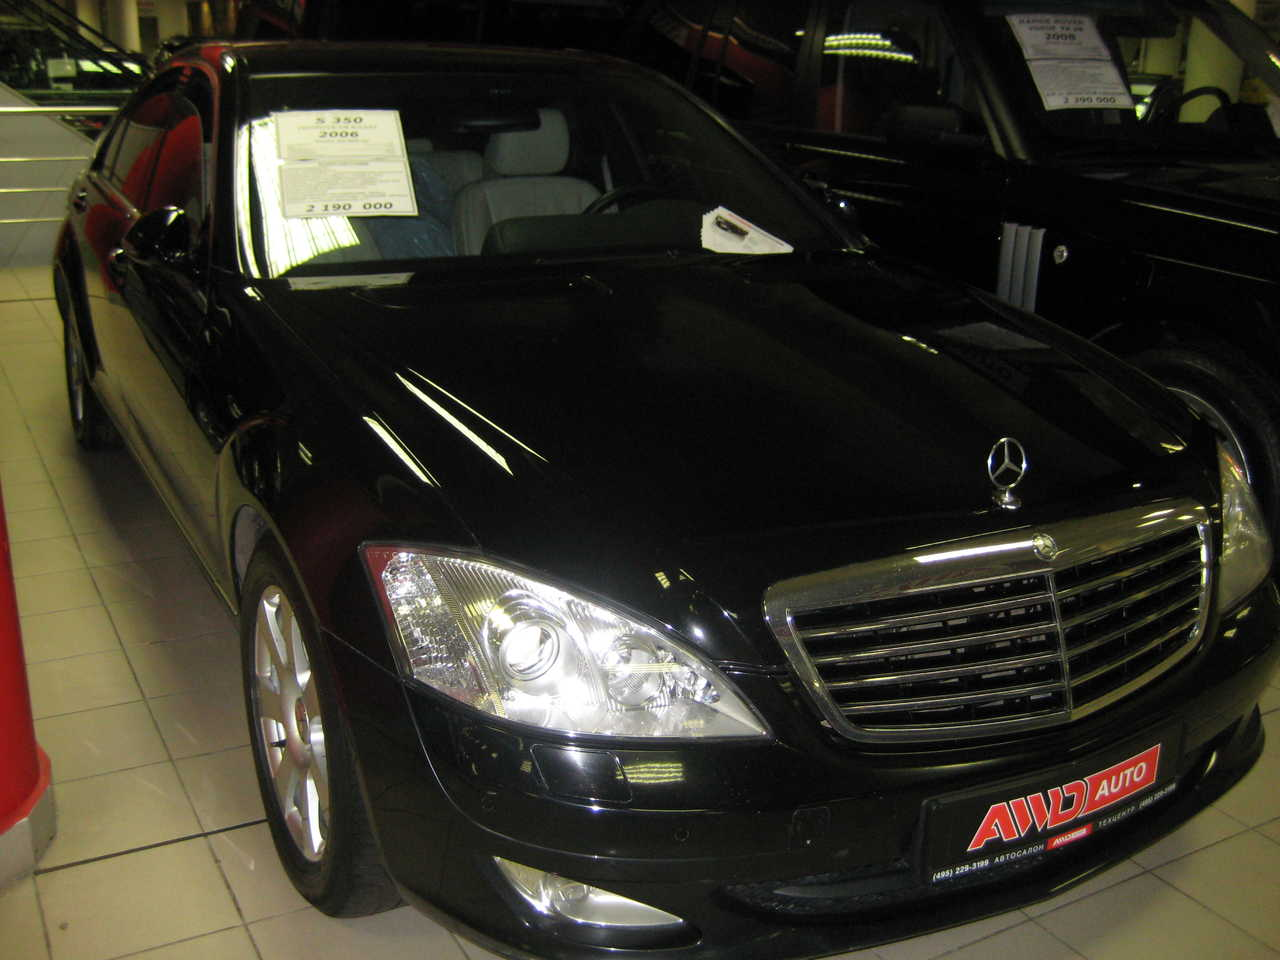 2006 mercedes benz s class pictures 3498cc automatic. Black Bedroom Furniture Sets. Home Design Ideas